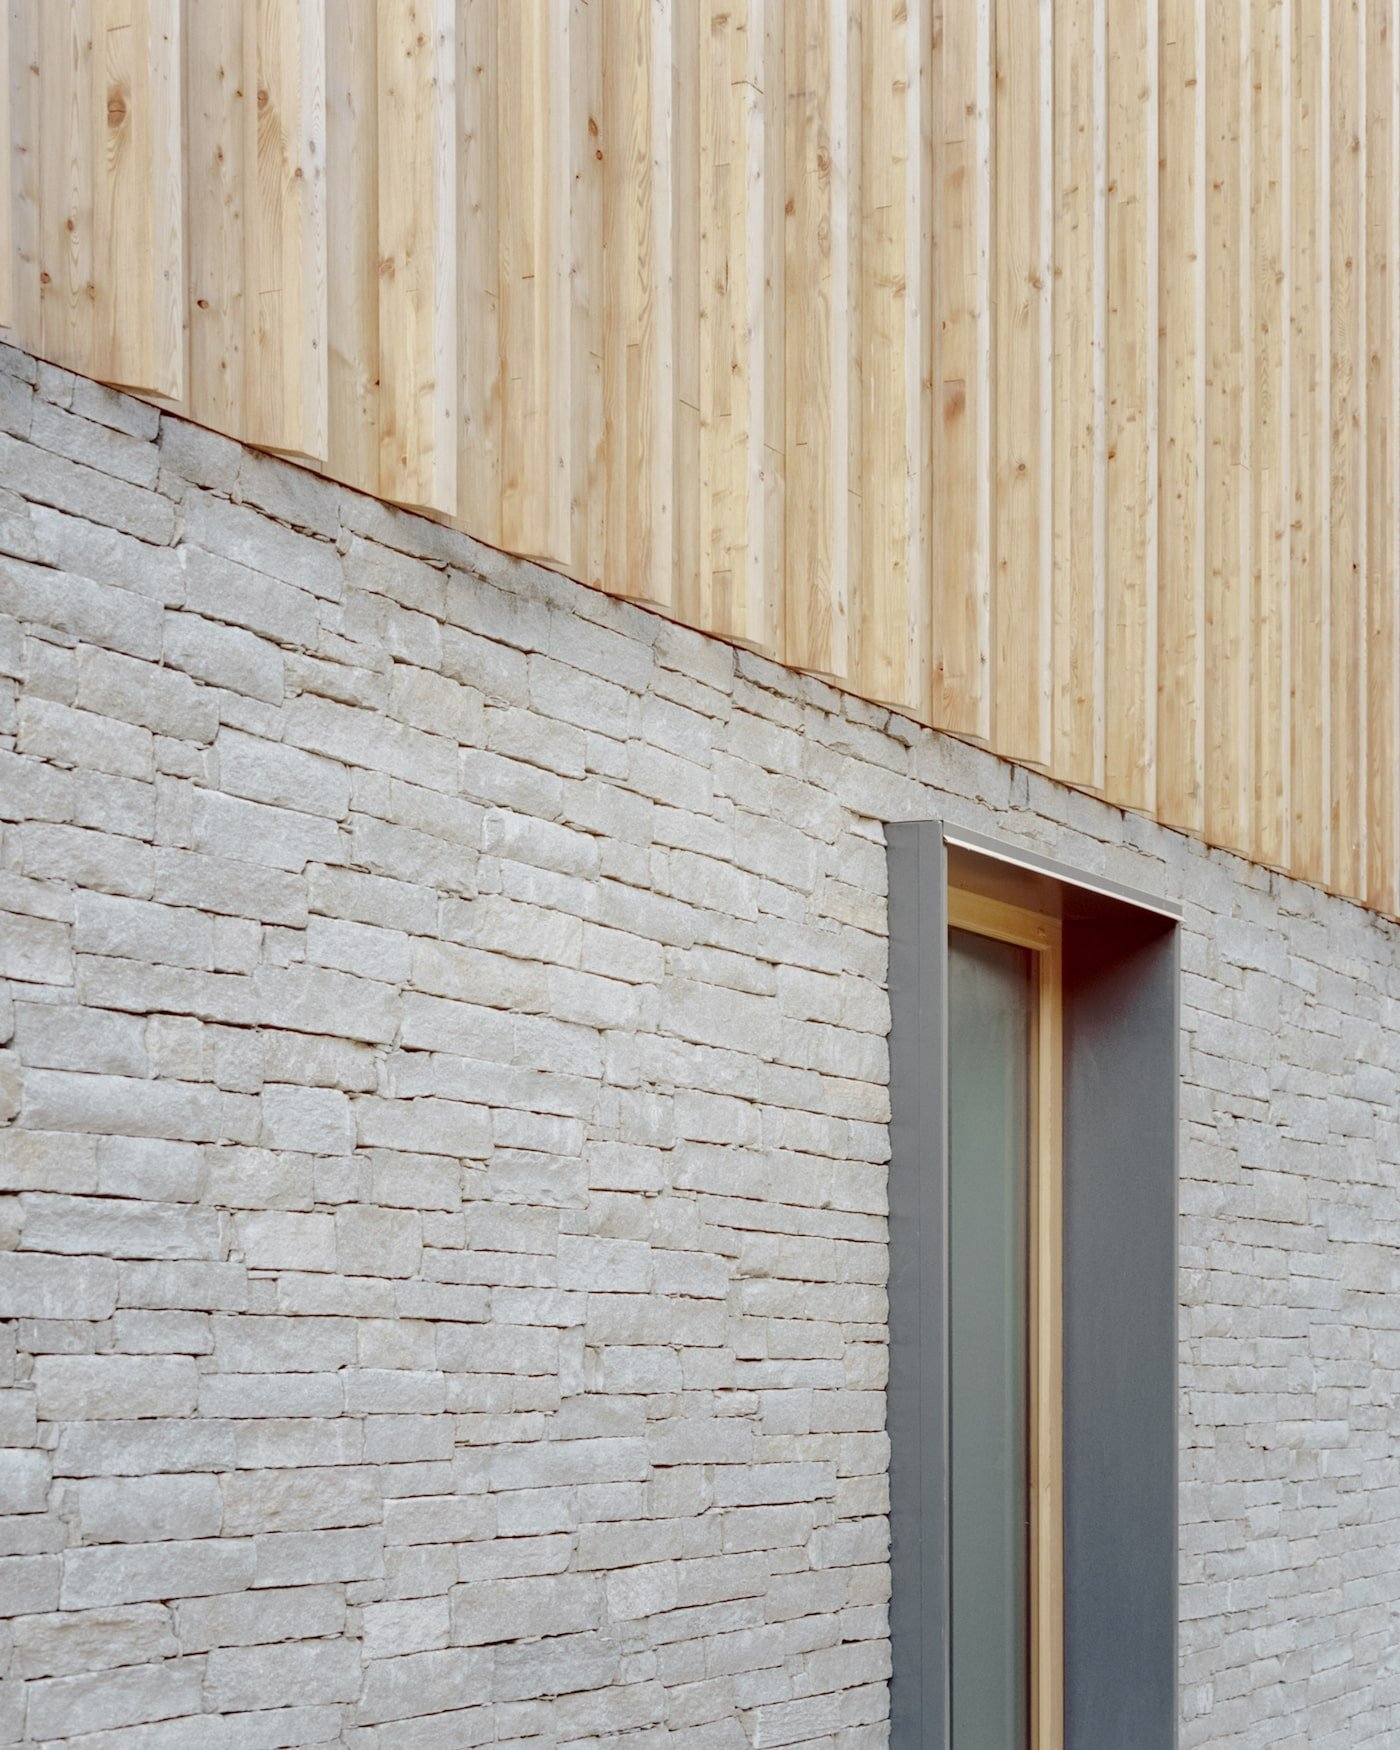 Locally sourced stone and sustainable timber facade